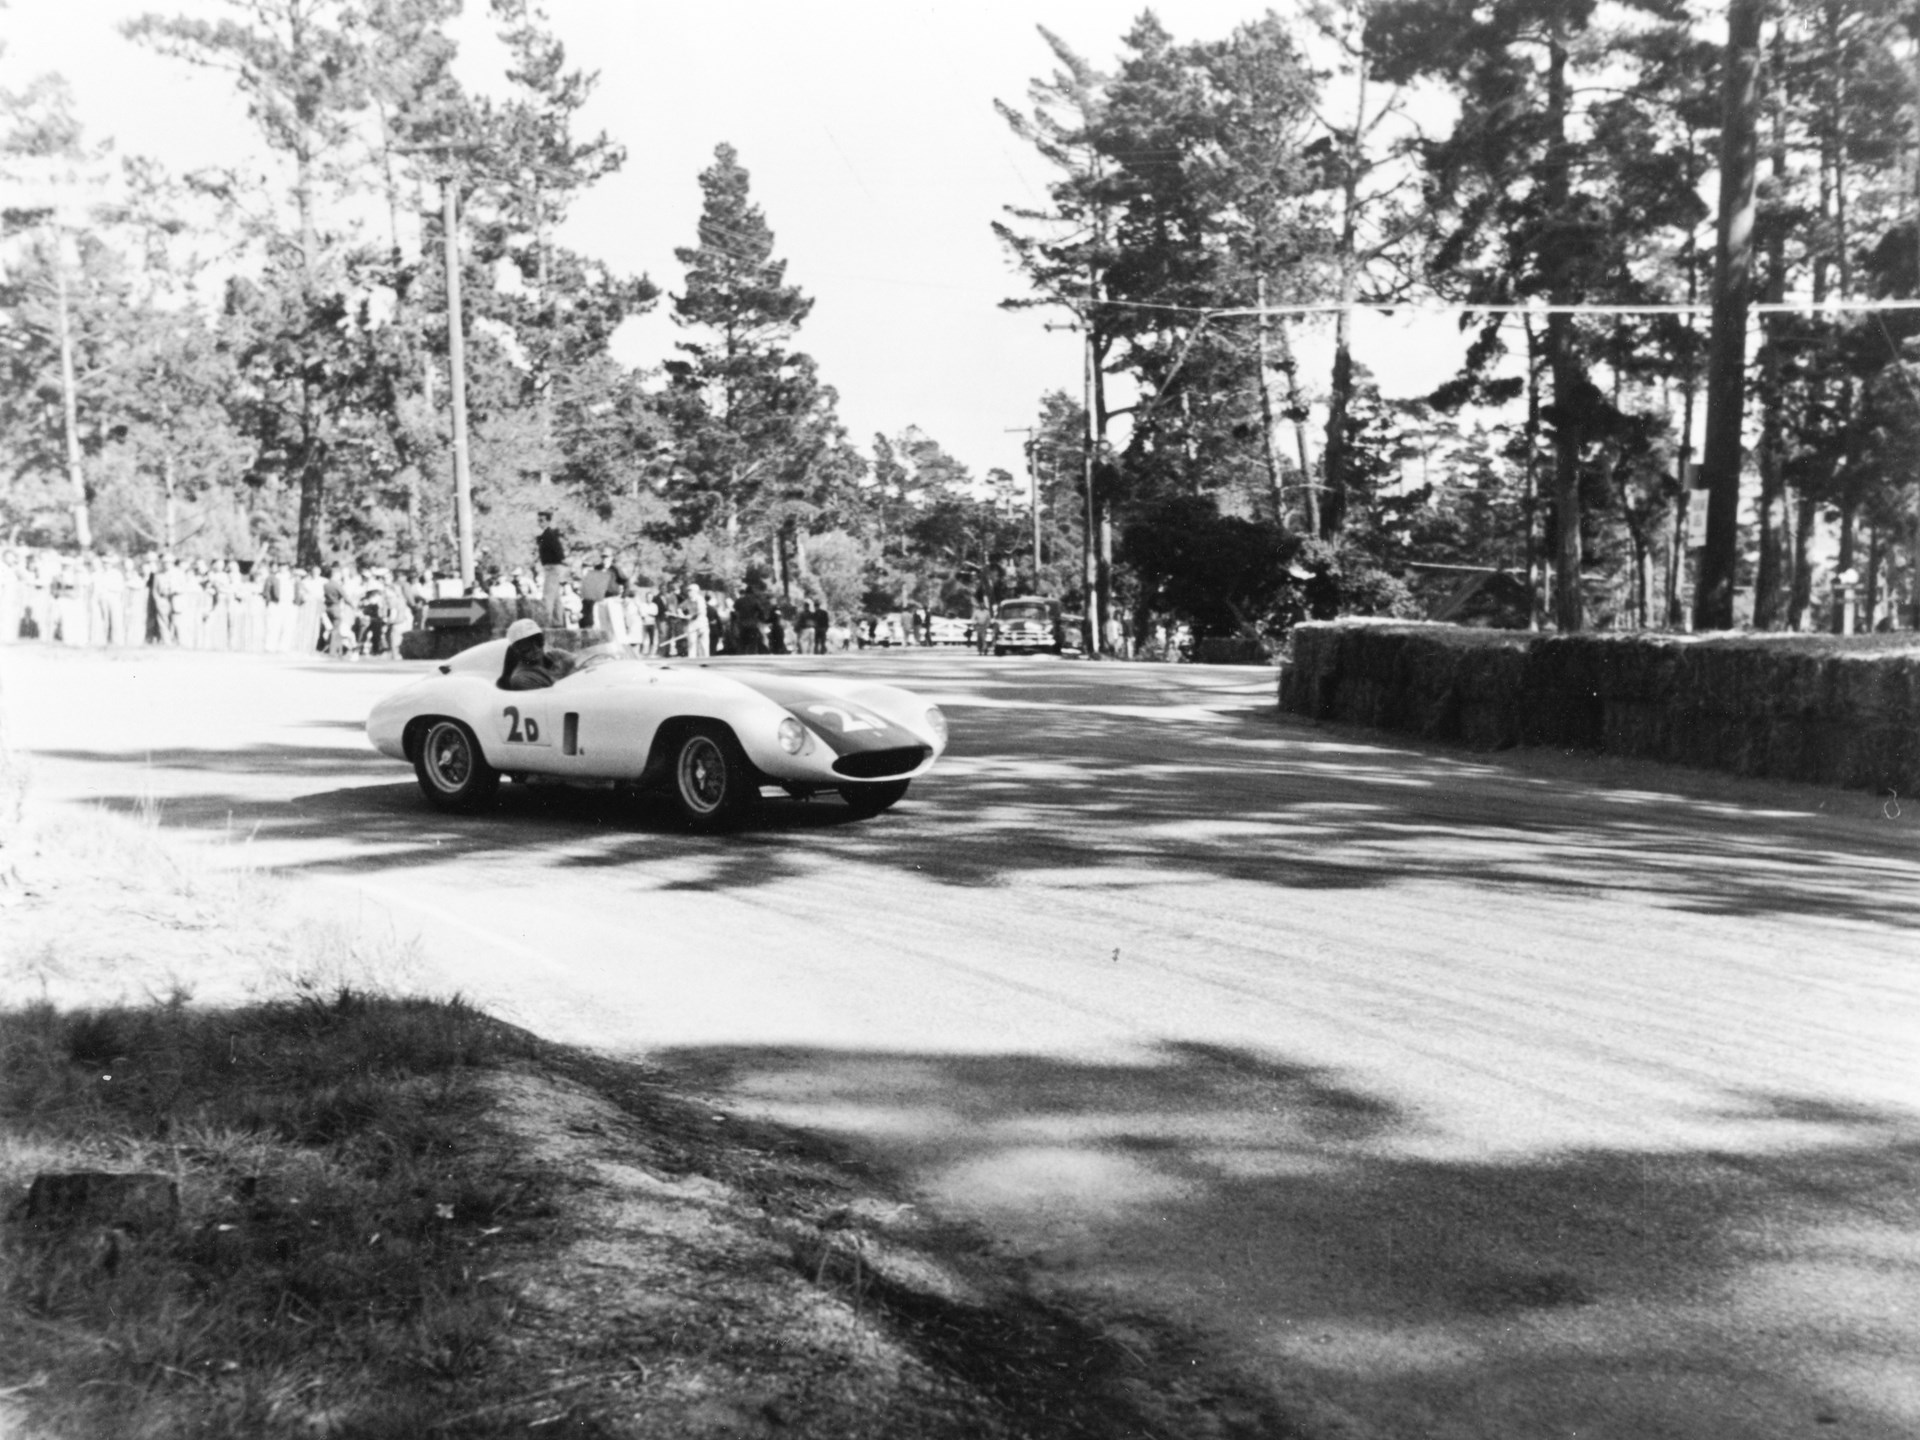 Chassis no. 0510M at Pebble Beach in 1955, where it placed 1st overall in the Del Monte Trophy race.